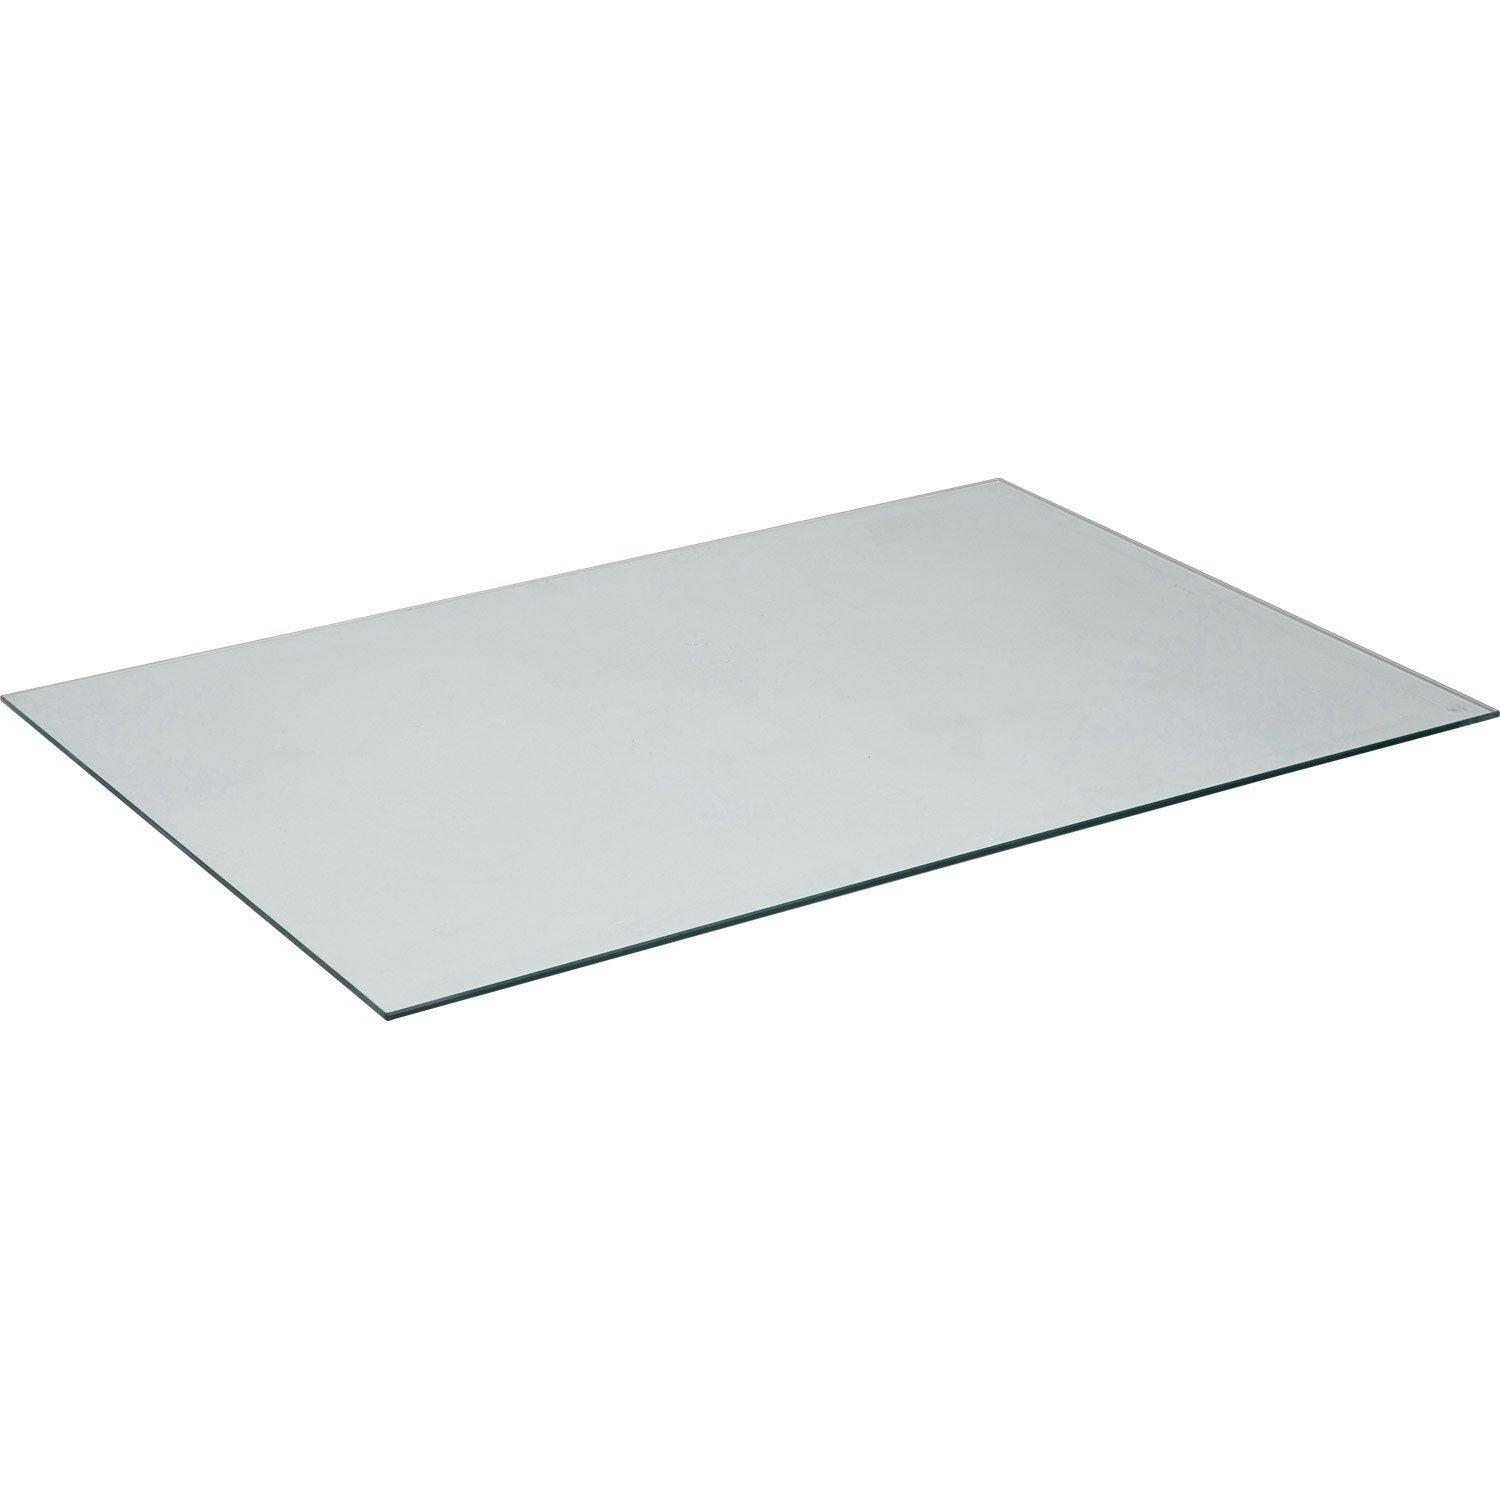 Plateau De Table Verre X Cm X Ep 8 Mm Leroy